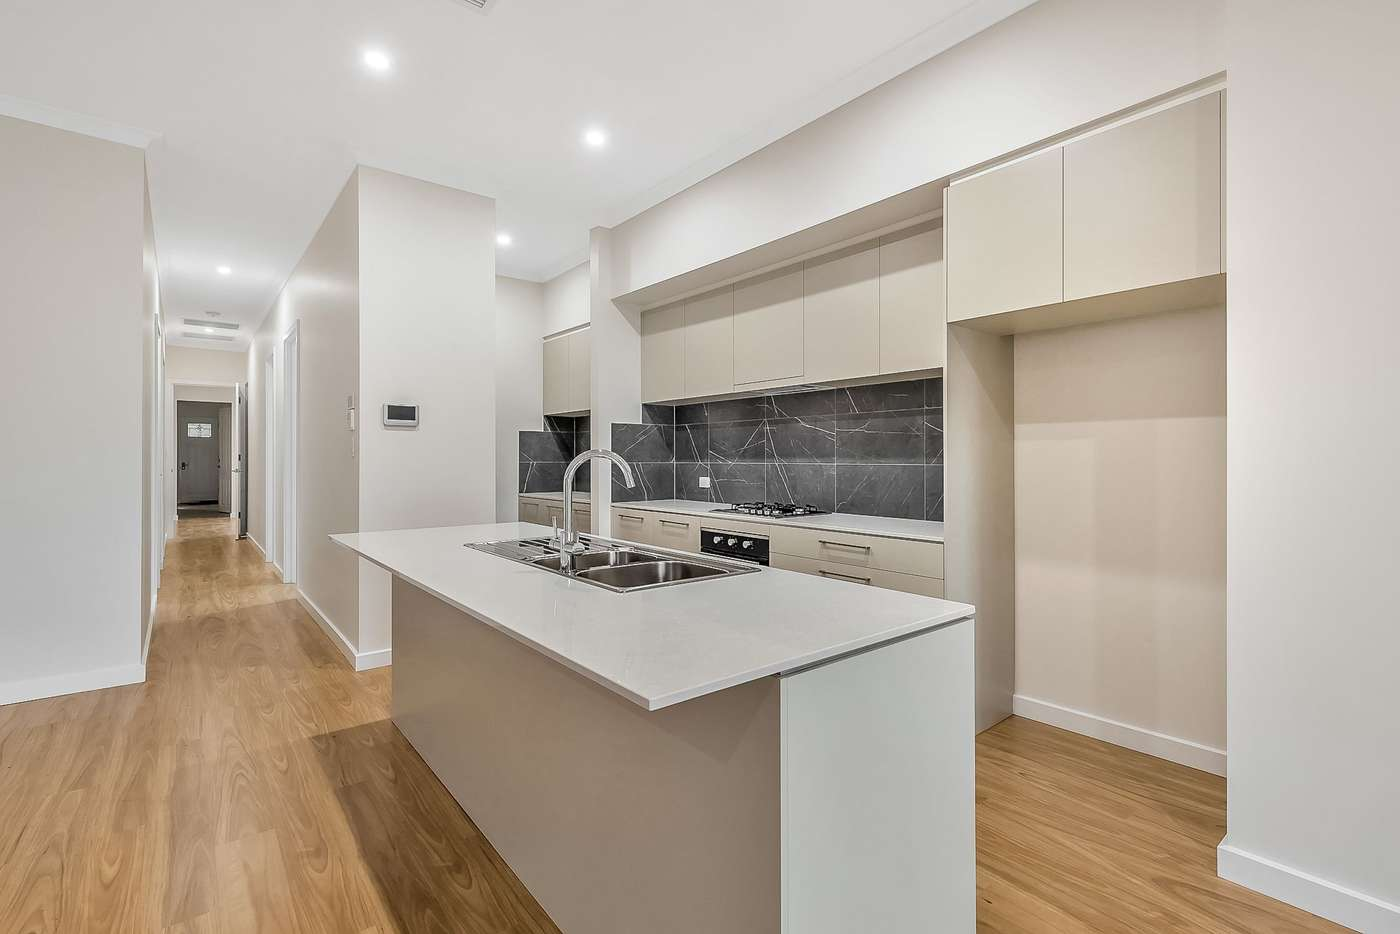 Main view of Homely house listing, 29 Tarragon Street, Mile End SA 5031